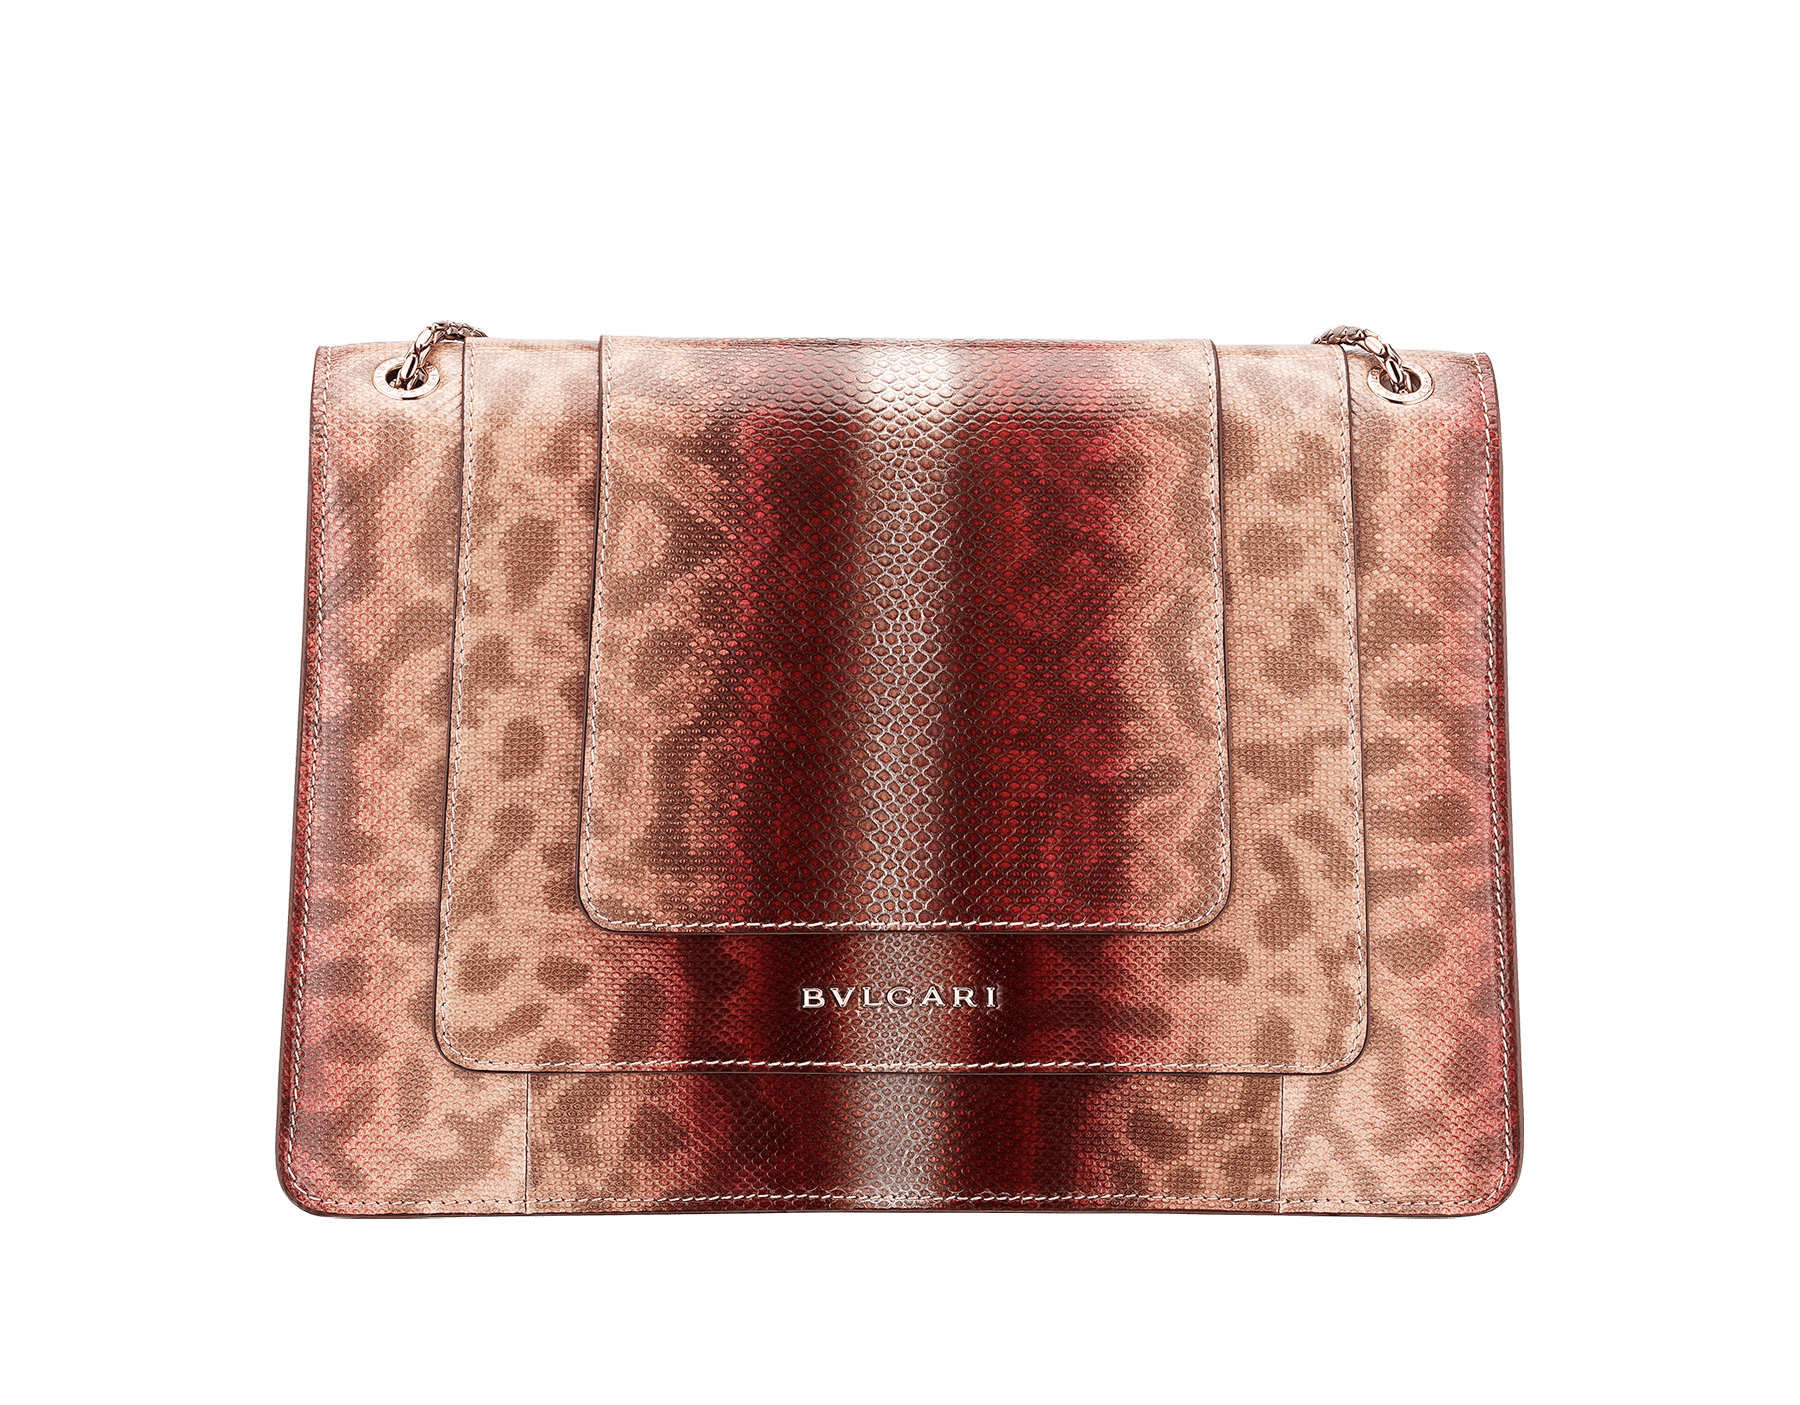 Serpenti Forever shoulder bag in rosa di francia Sahara karung skin. Iconic snakehead closure in light gold plated brass embellished with roman garnet and black enamel and black onyx eyes . 289015 image 3